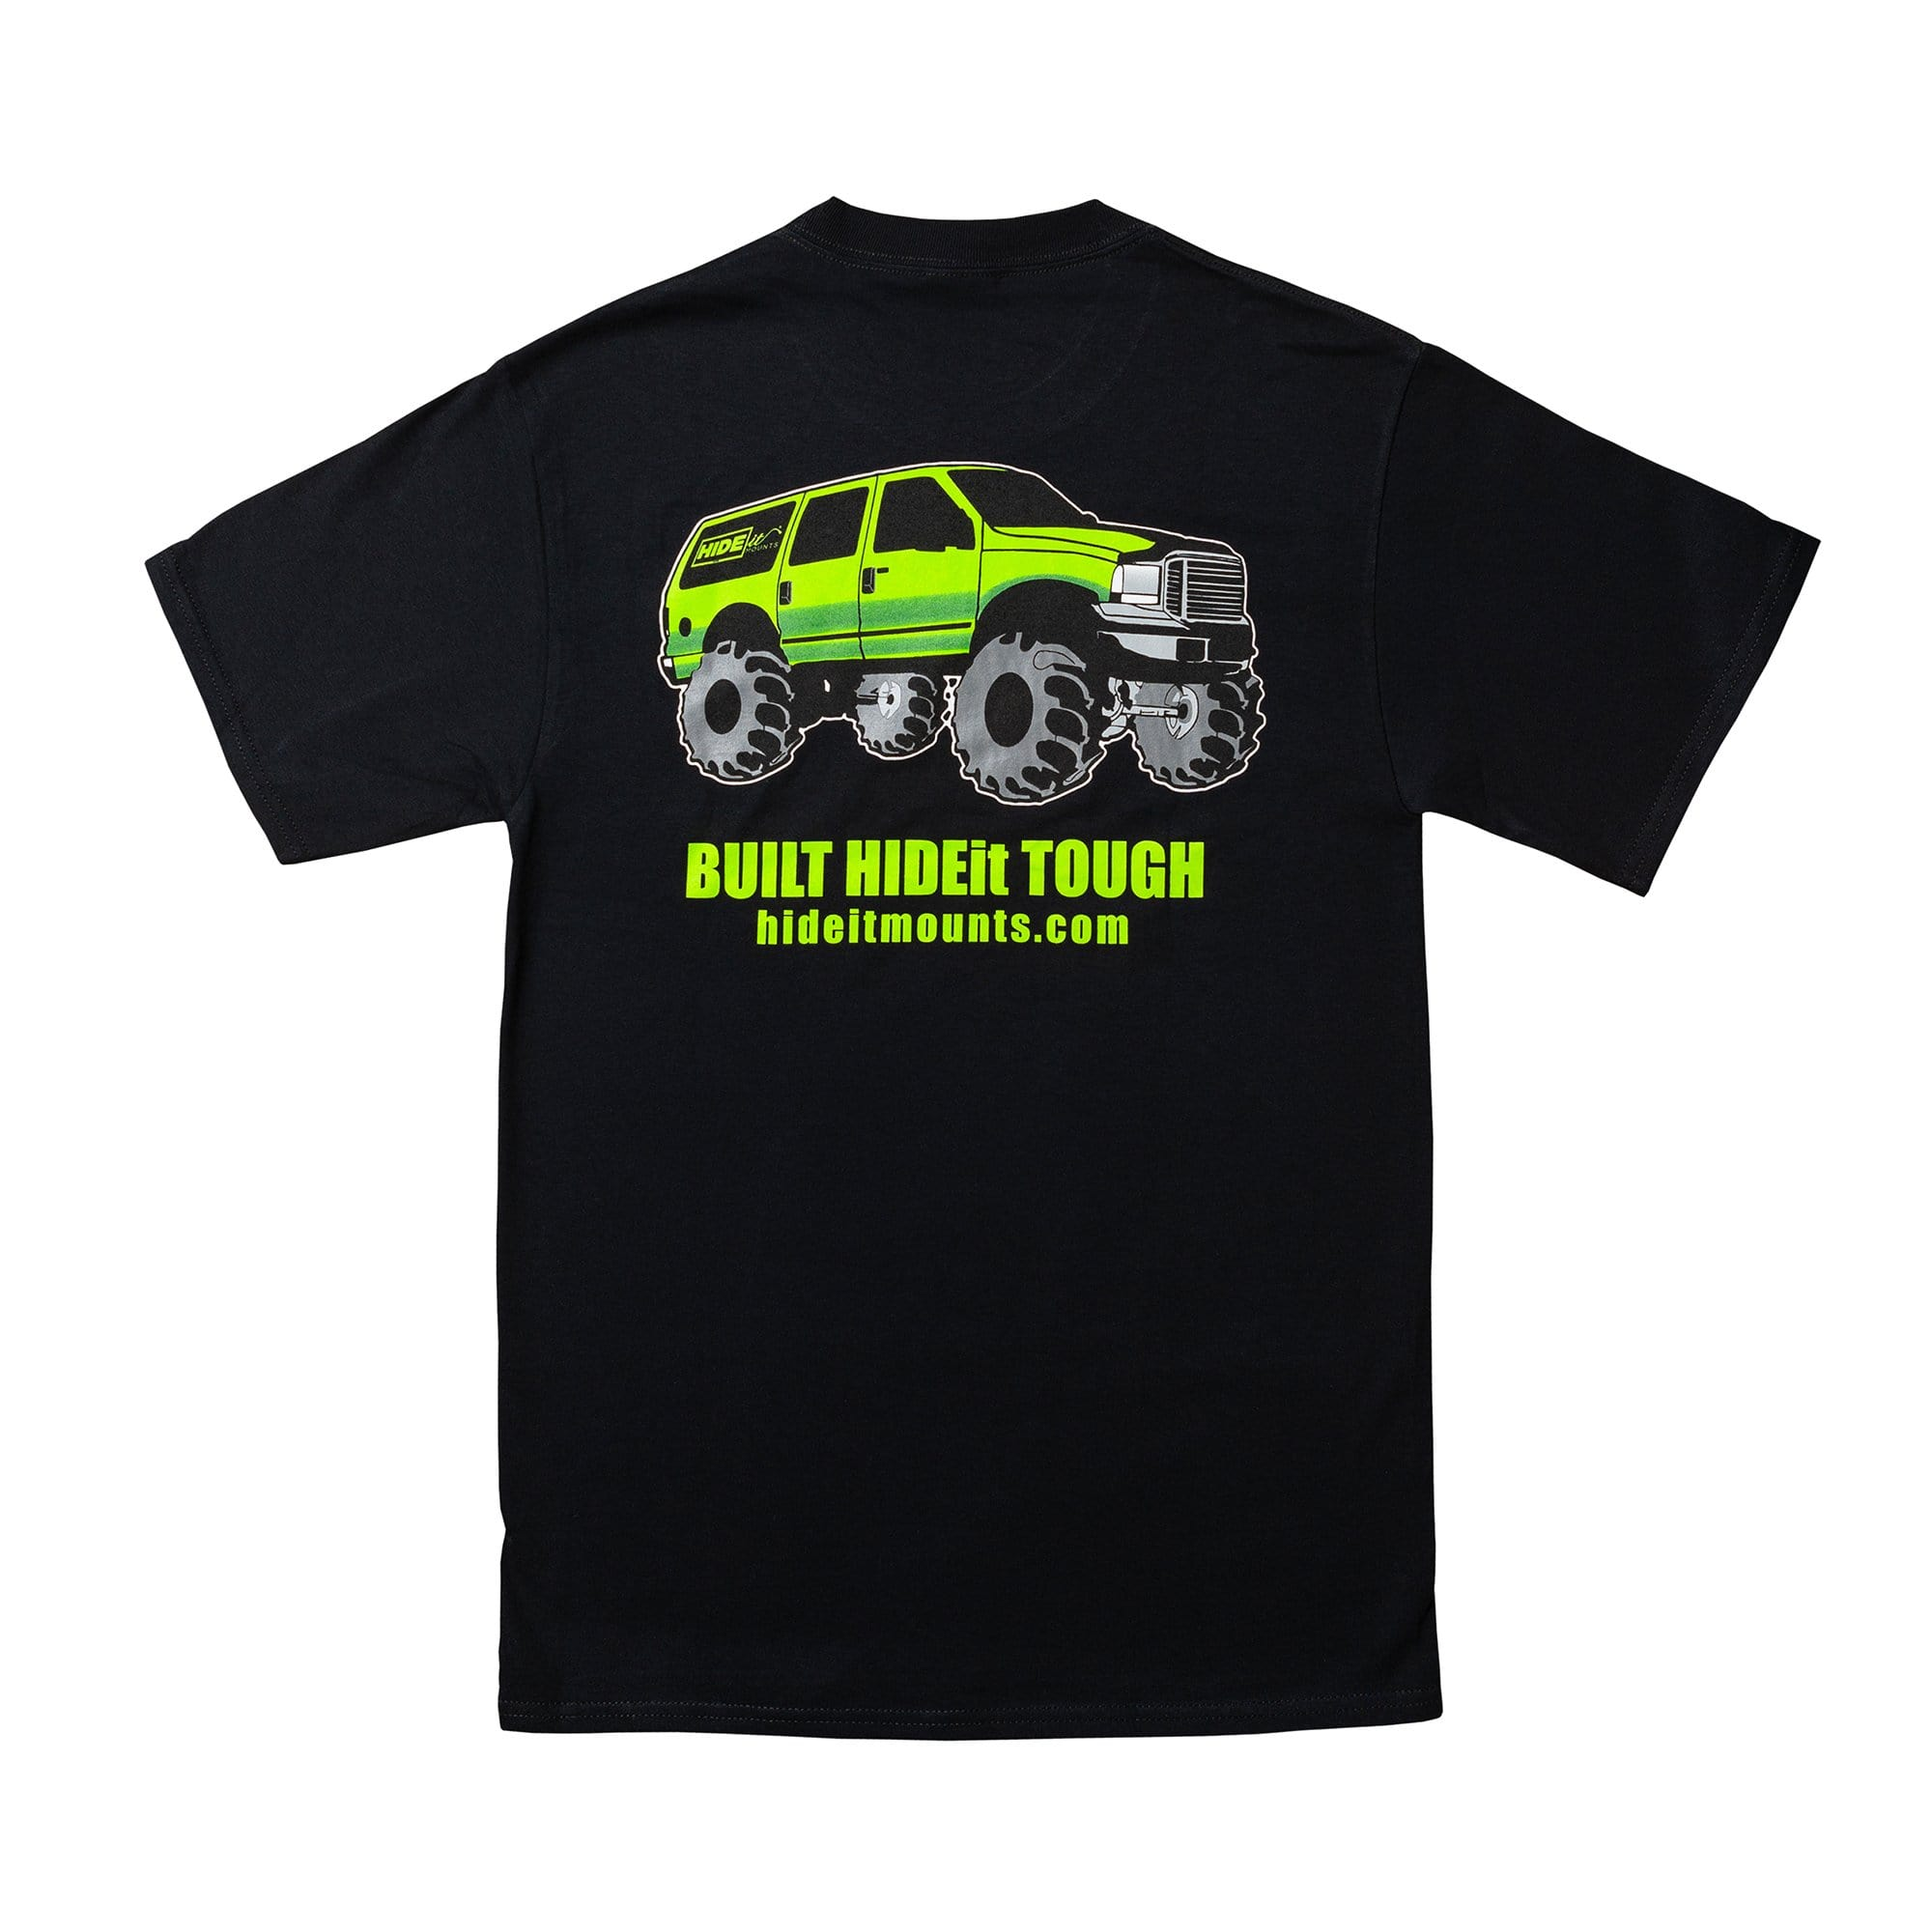 HIDEit Mounts monster truck t-shirt. Black, short sleeve t-shirt. Unisex.